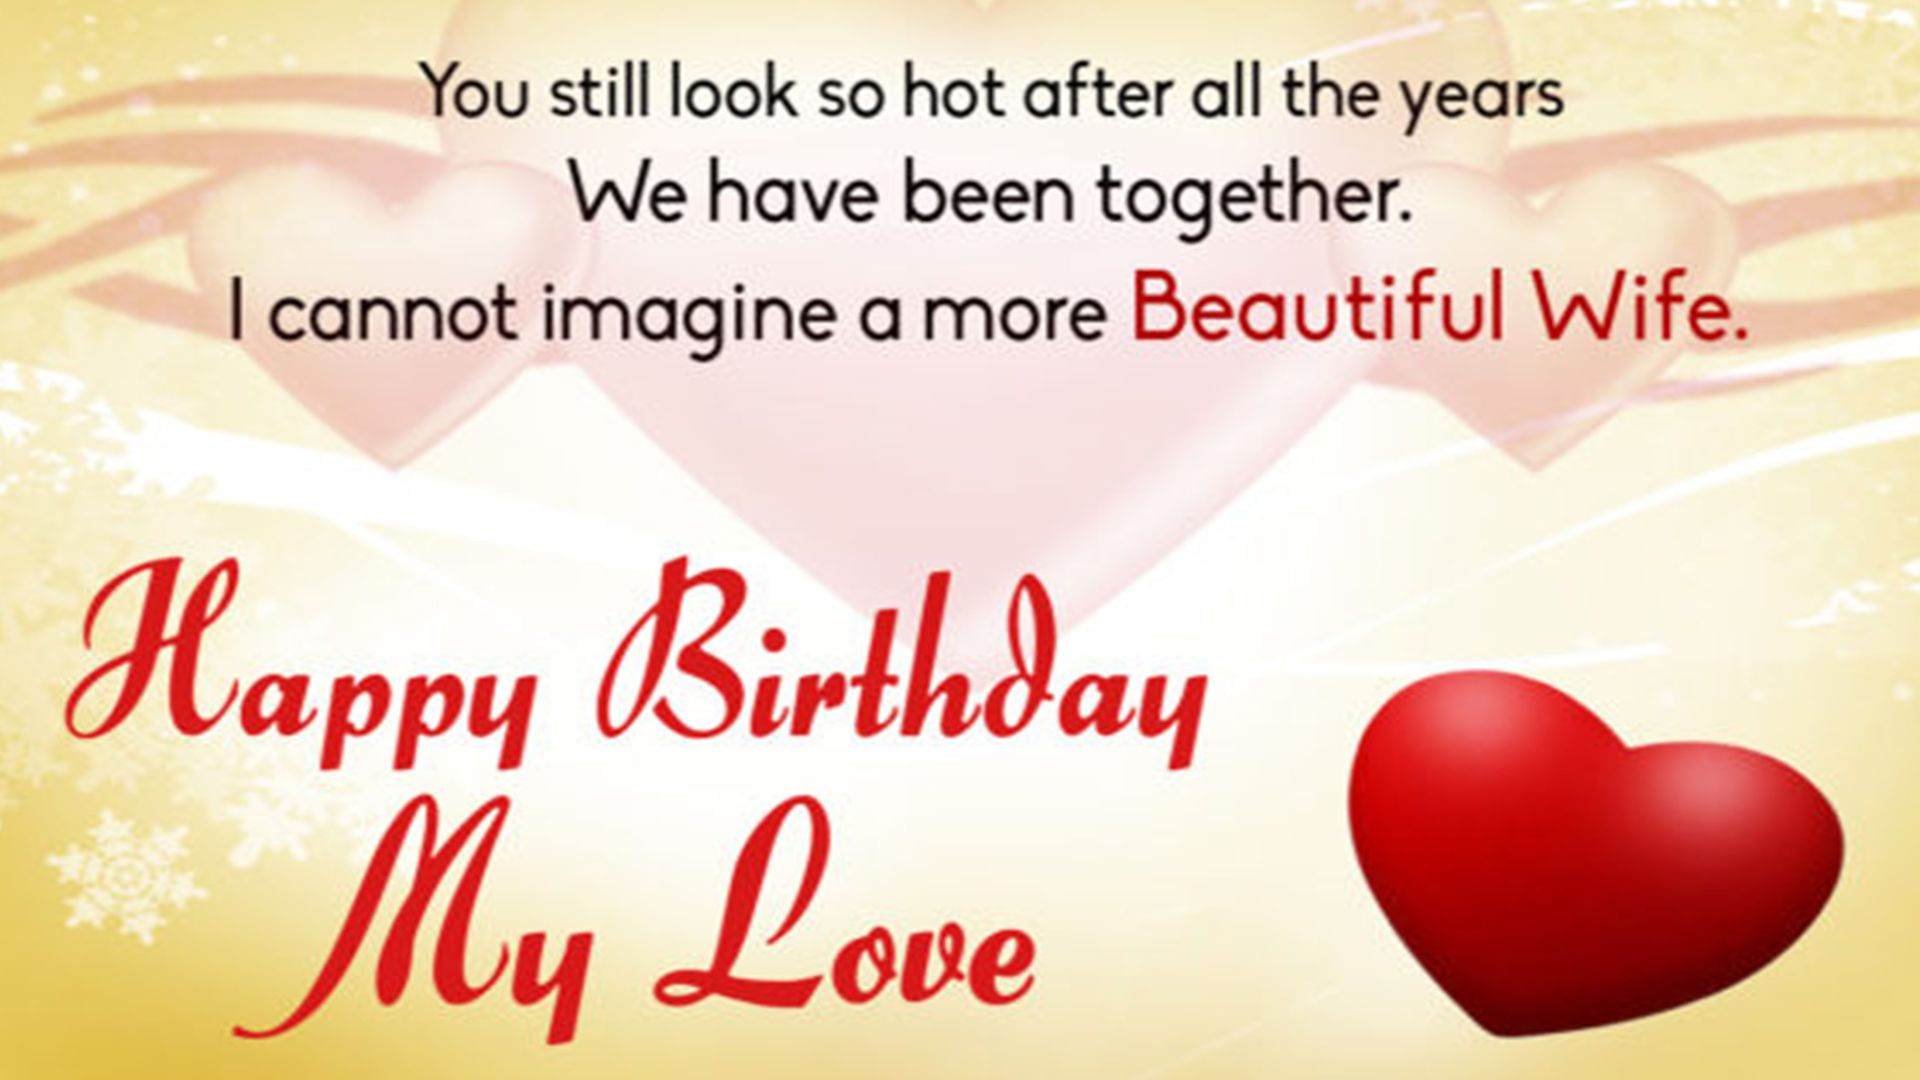 Happy Birthday Wife  Birthday Wishes For Wife Images Free